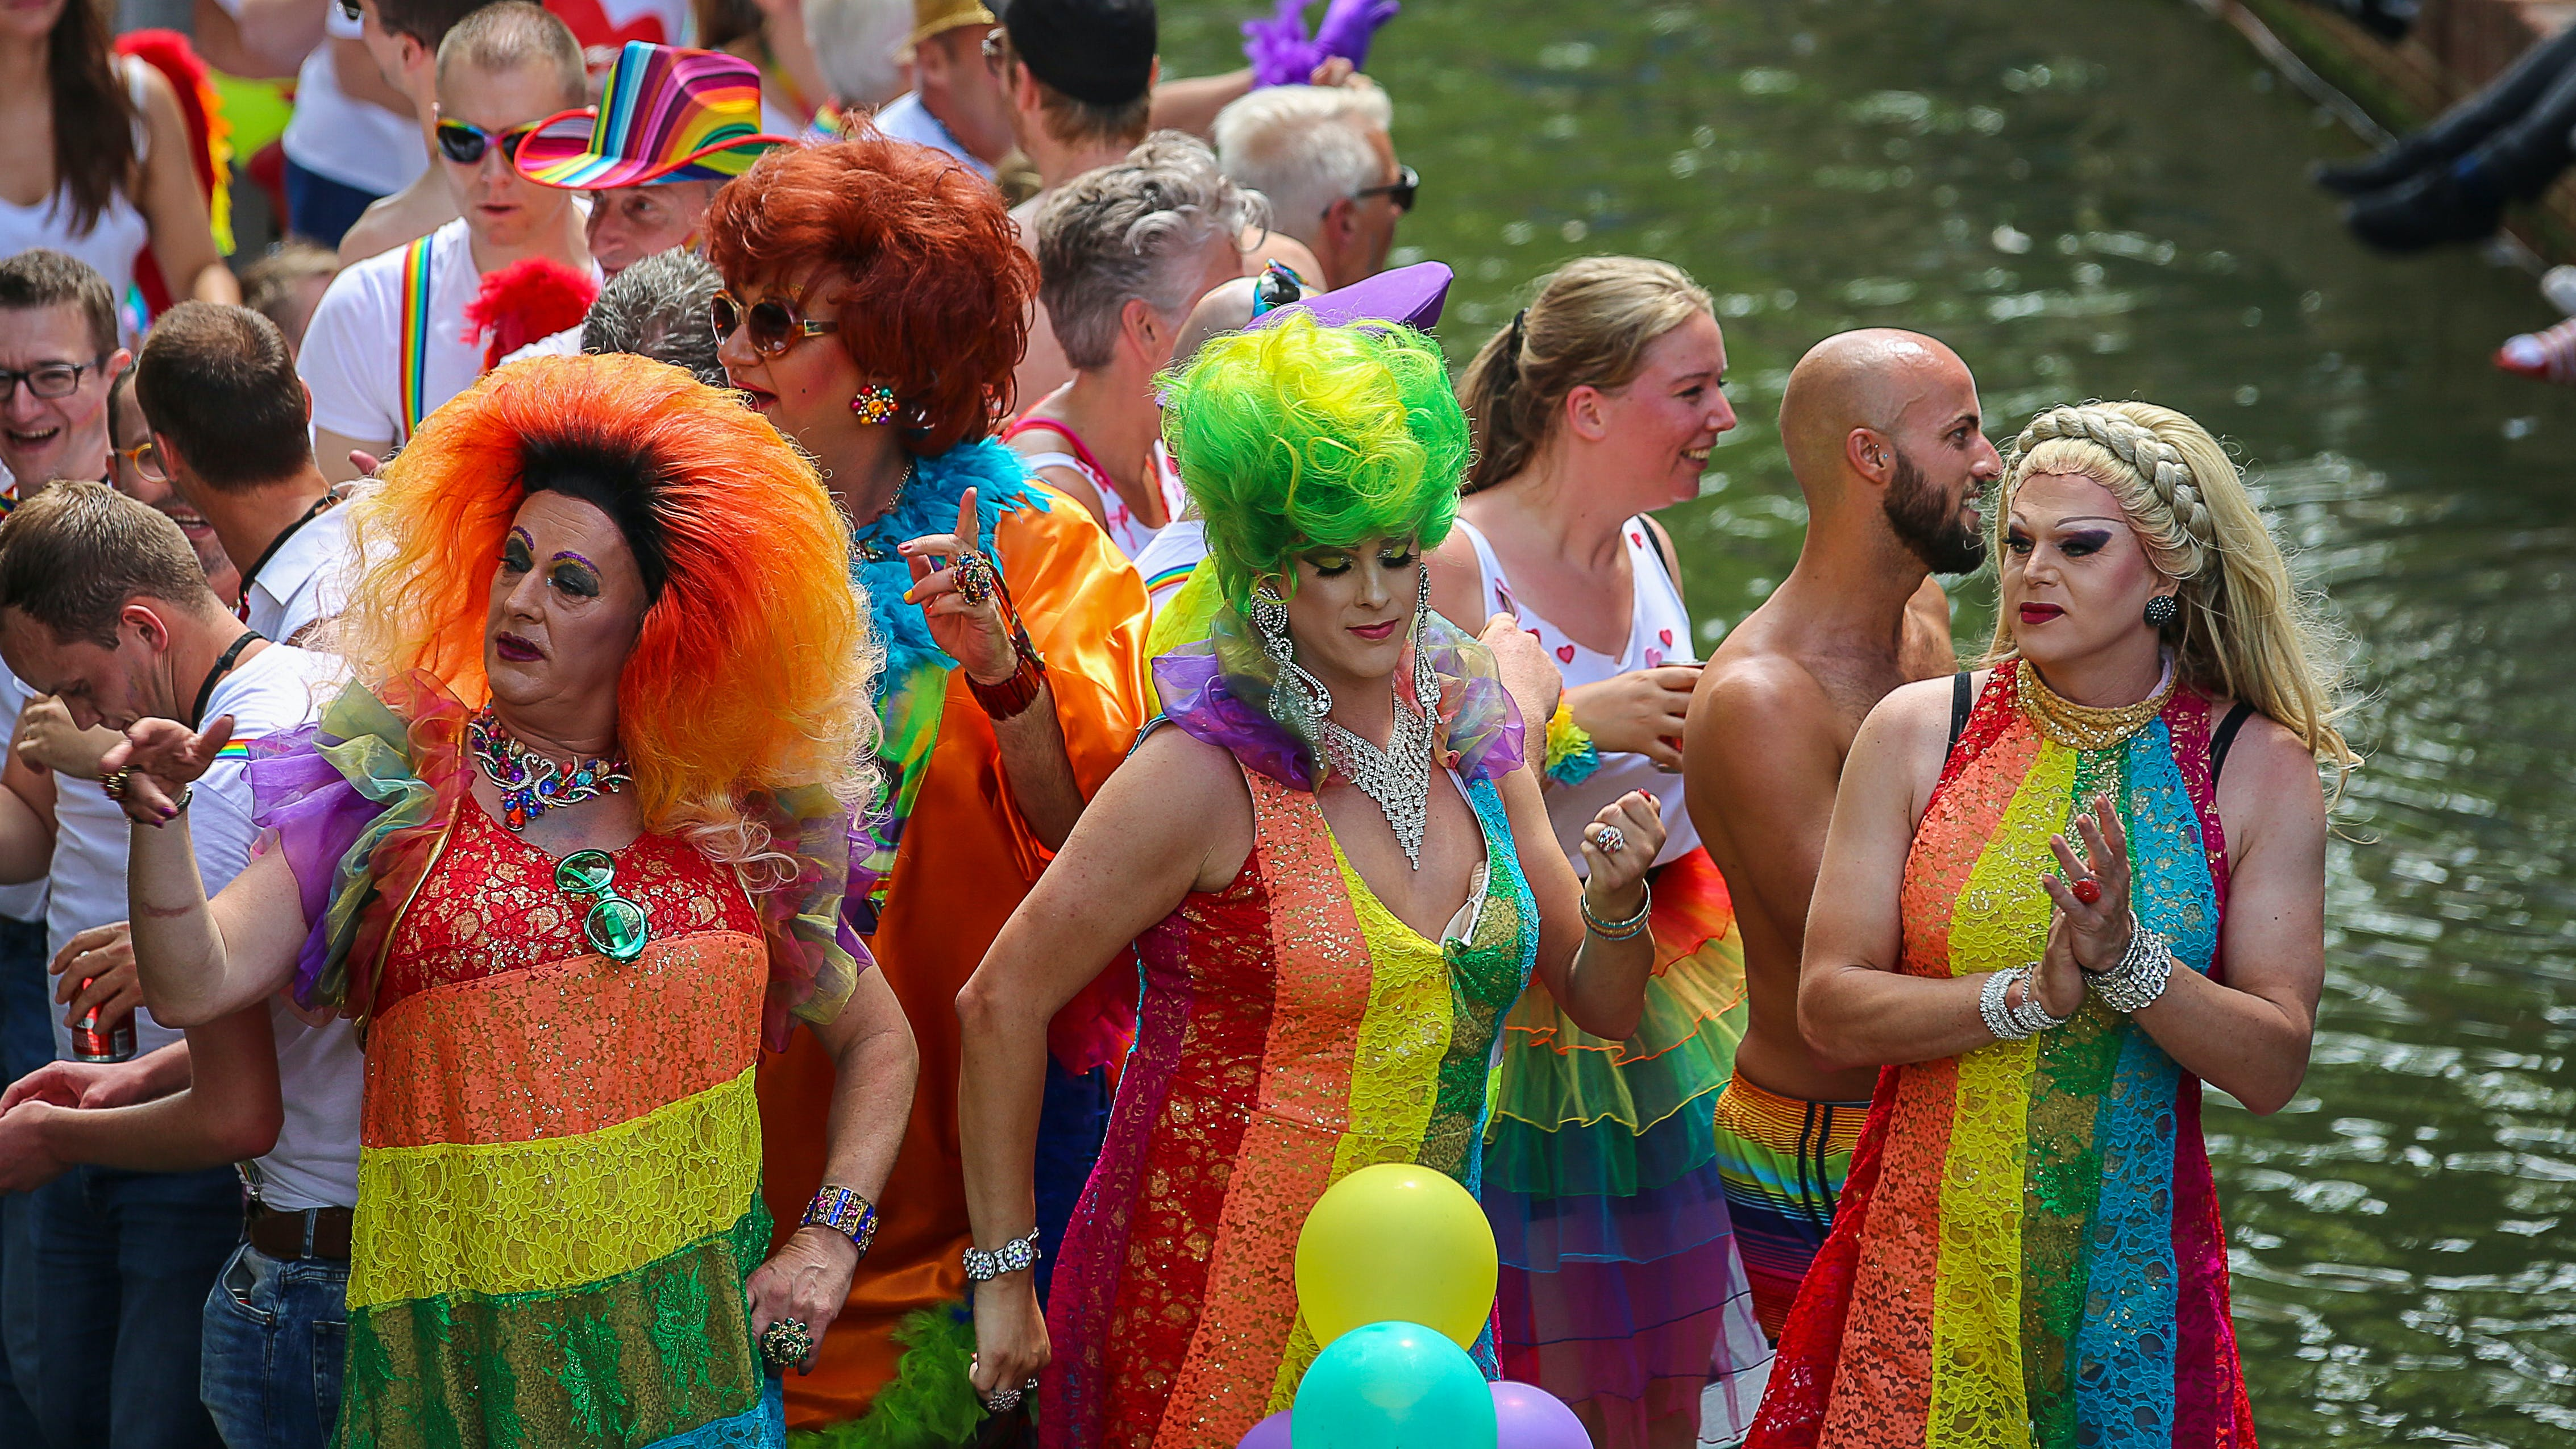 Three People Wearing Rainbow Dresses Dancing in Front of Crowd